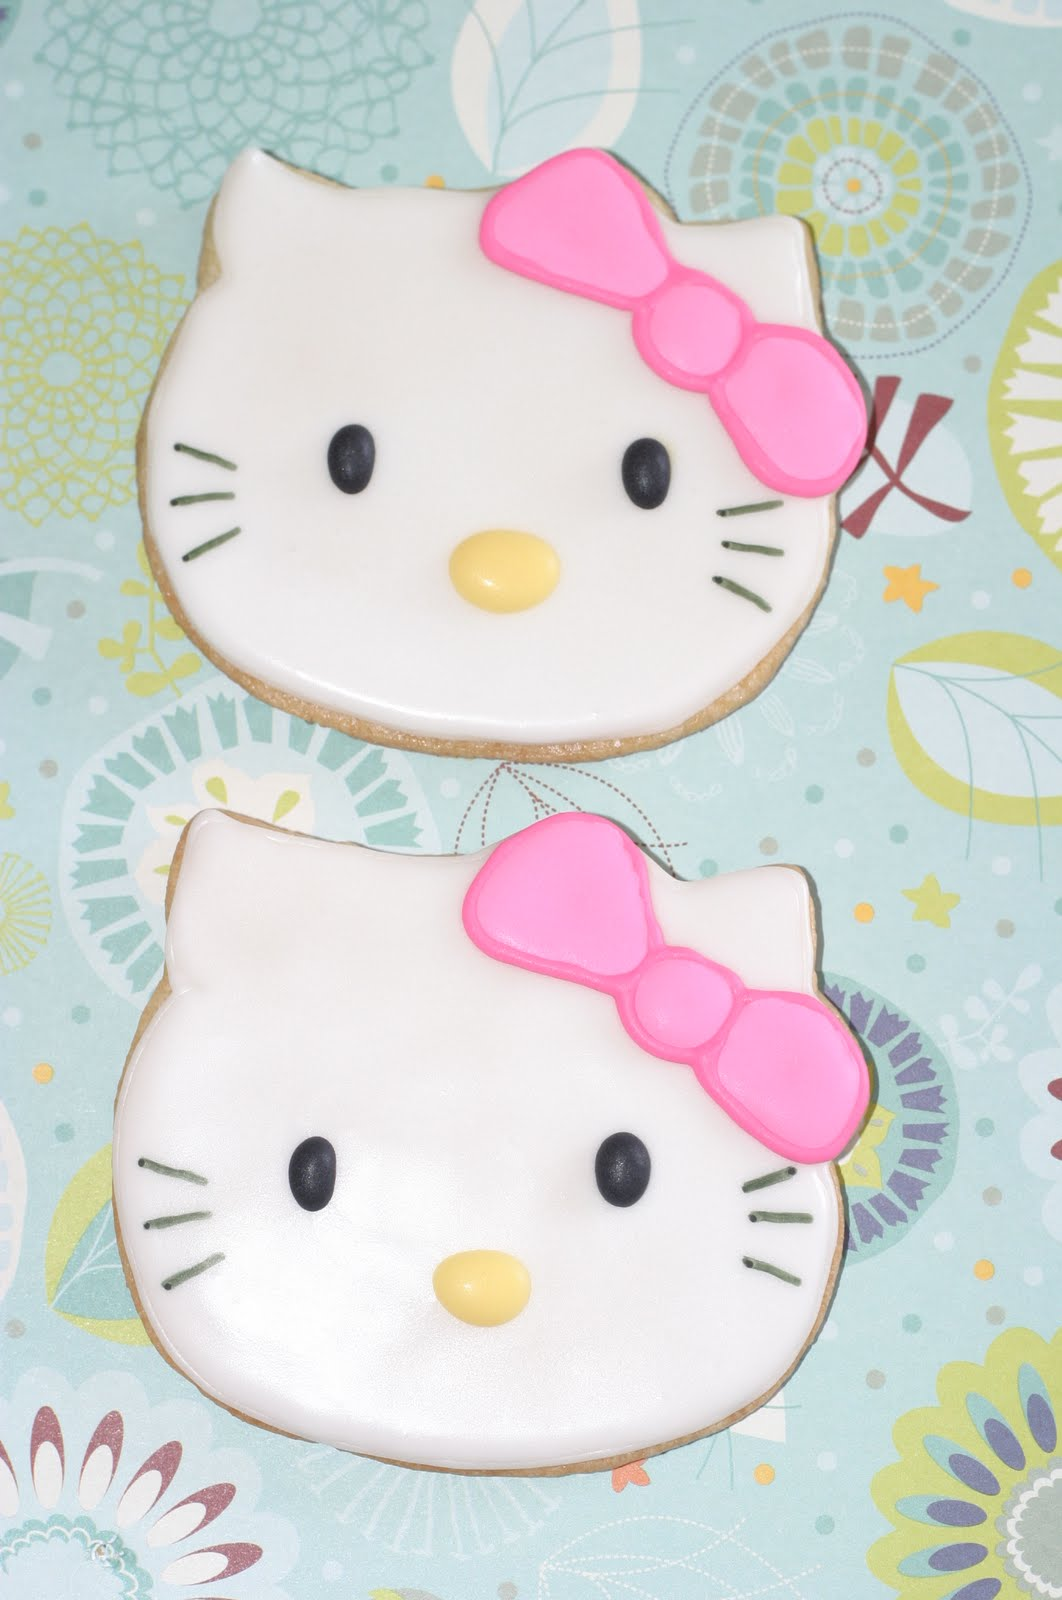 Pink Little Cake Hello Kitty Cake And Cookie Favors